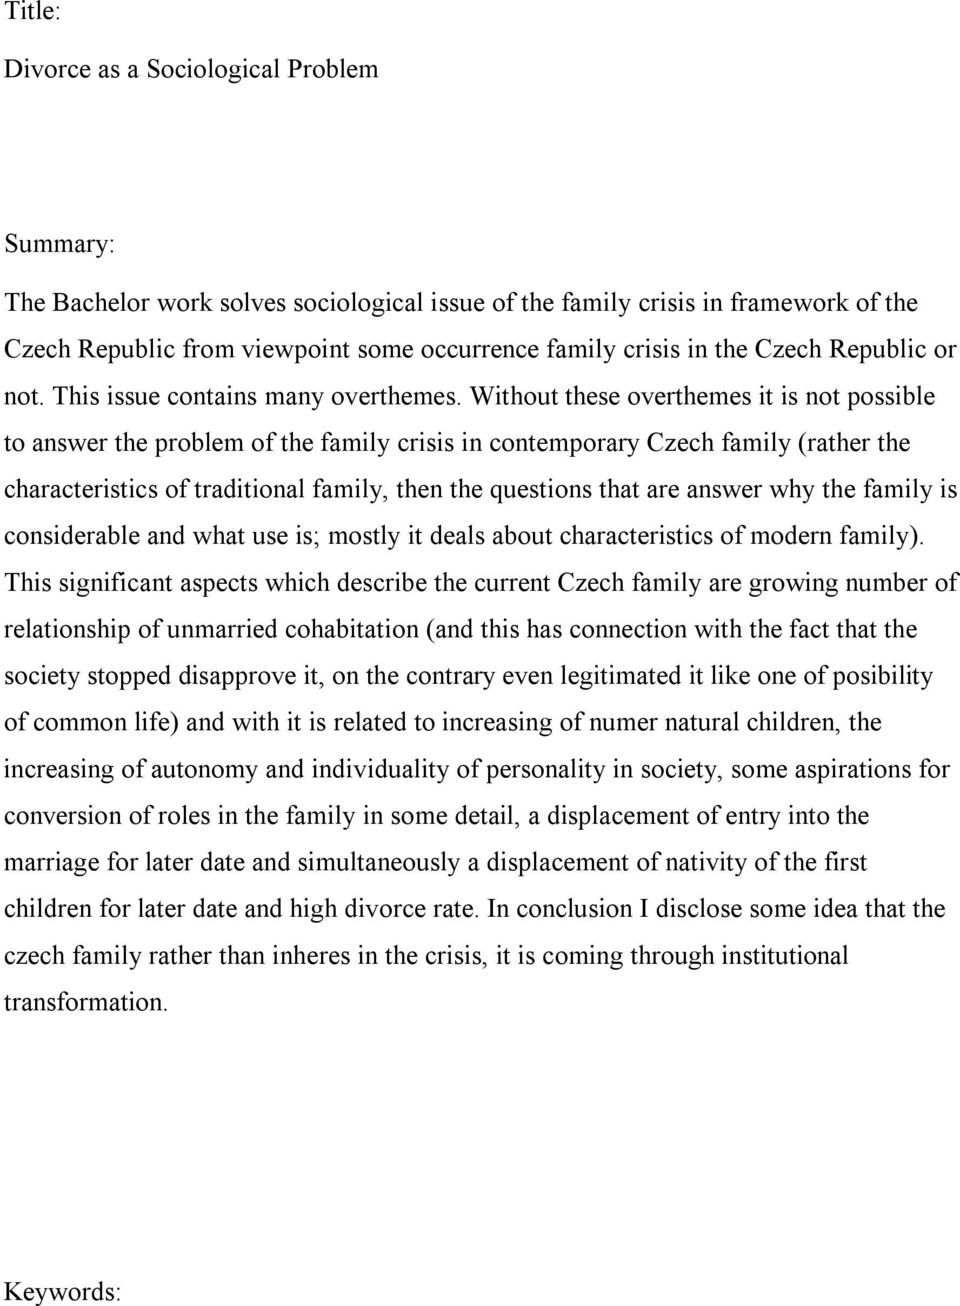 Without these overthemes it is not possible to answer the problem of the family crisis in contemporary Czech family (rather the characteristics of traditional family, then the questions that are